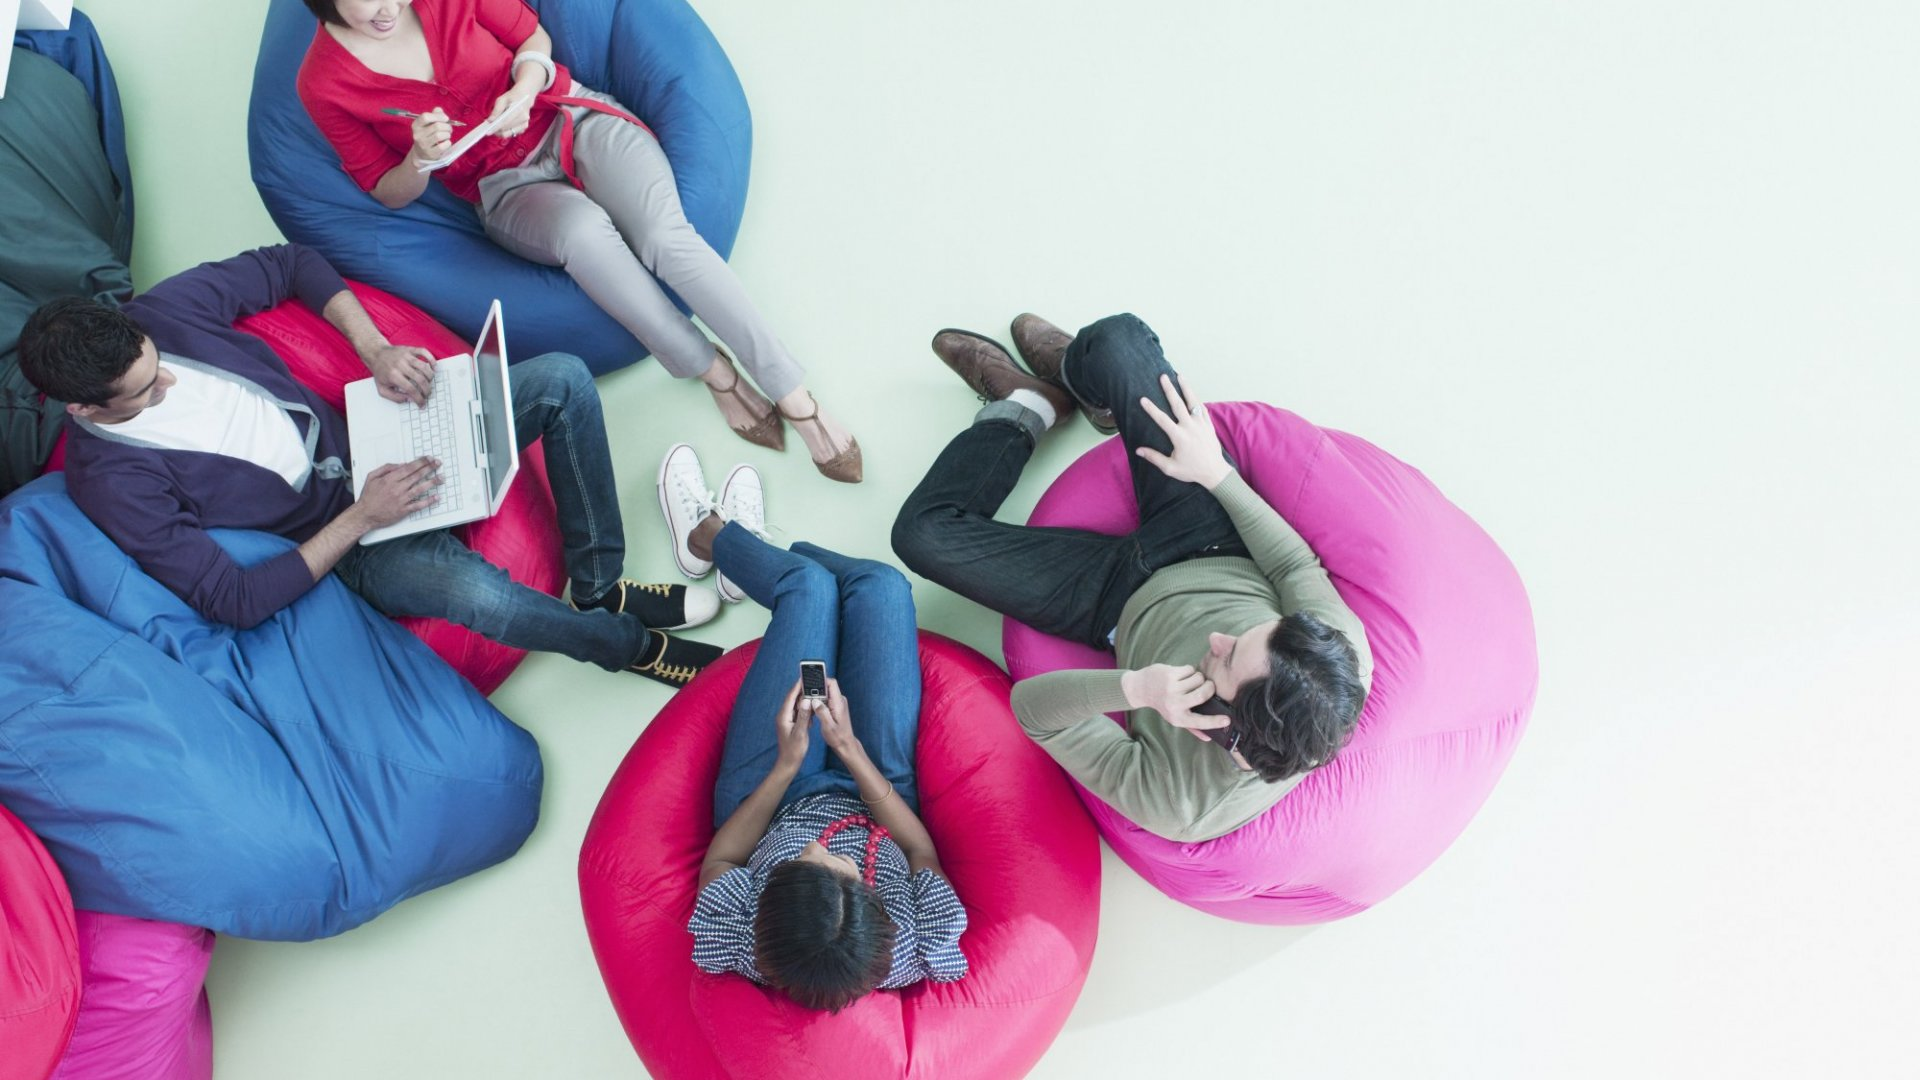 Want a Fast-Growing Company? Focus on Aligning Your Team With These 2 Key Efforts